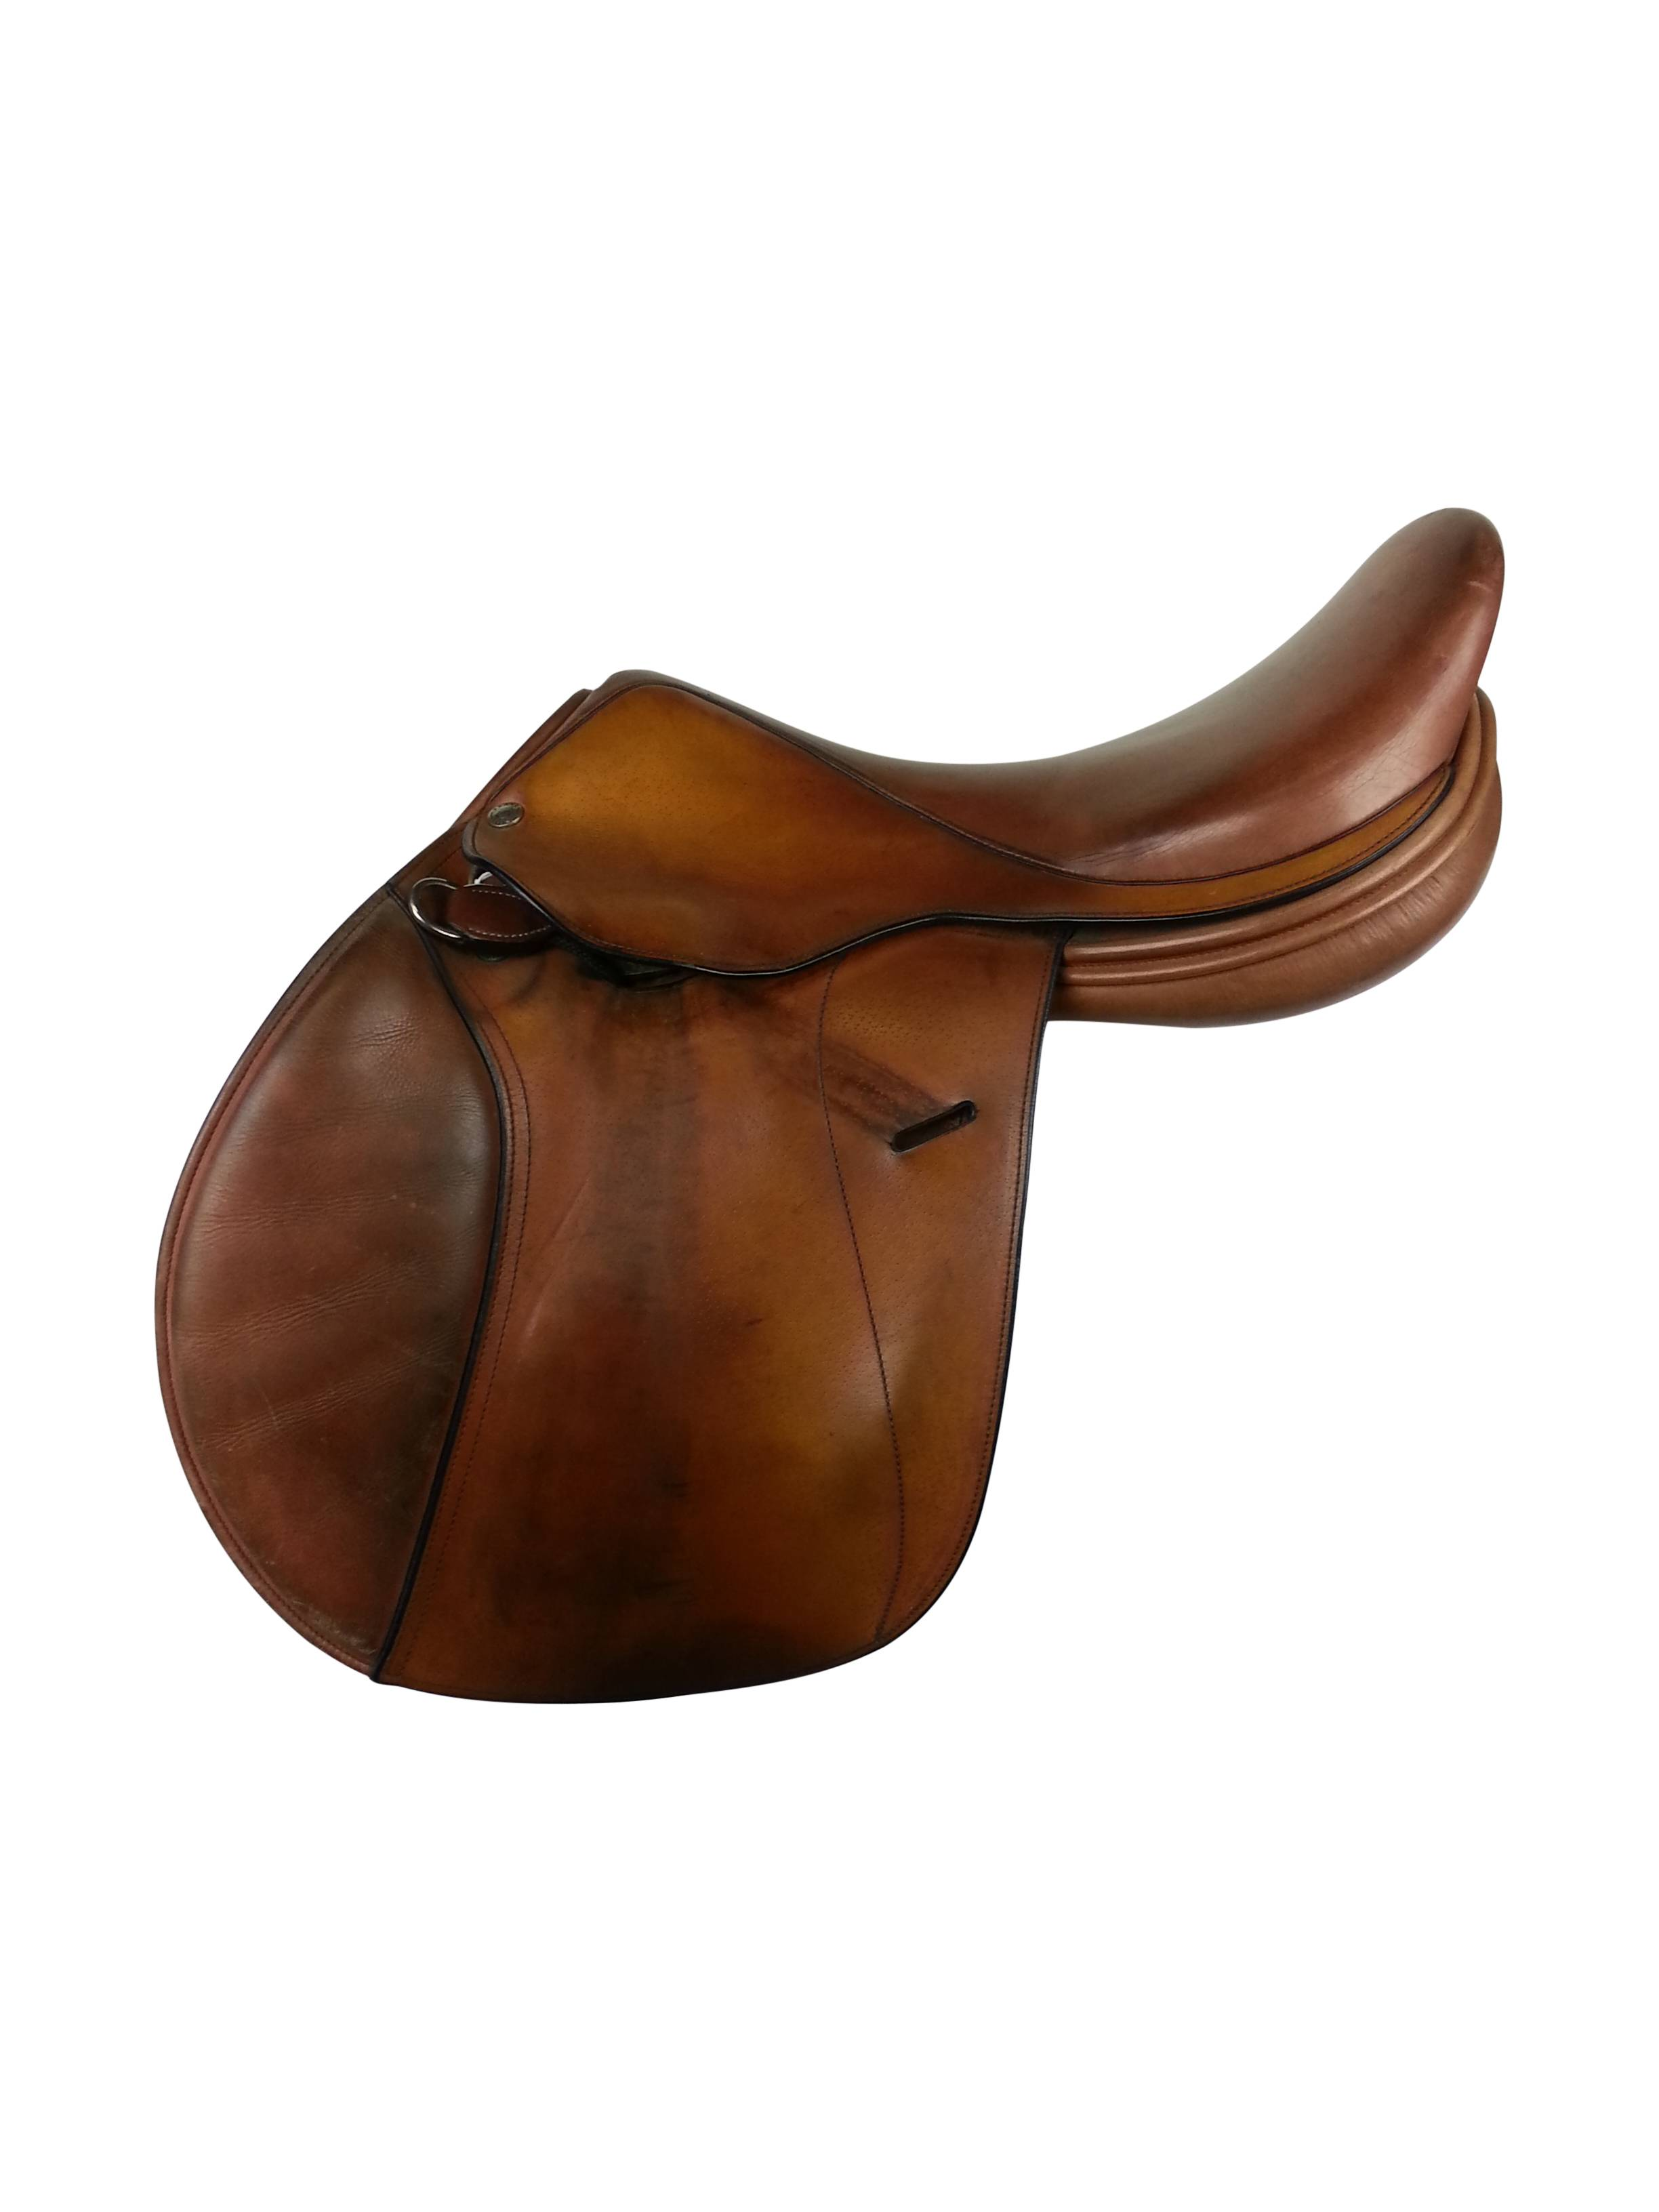 Used - Frank Baines Reflex Close Contact/Jump Saddle